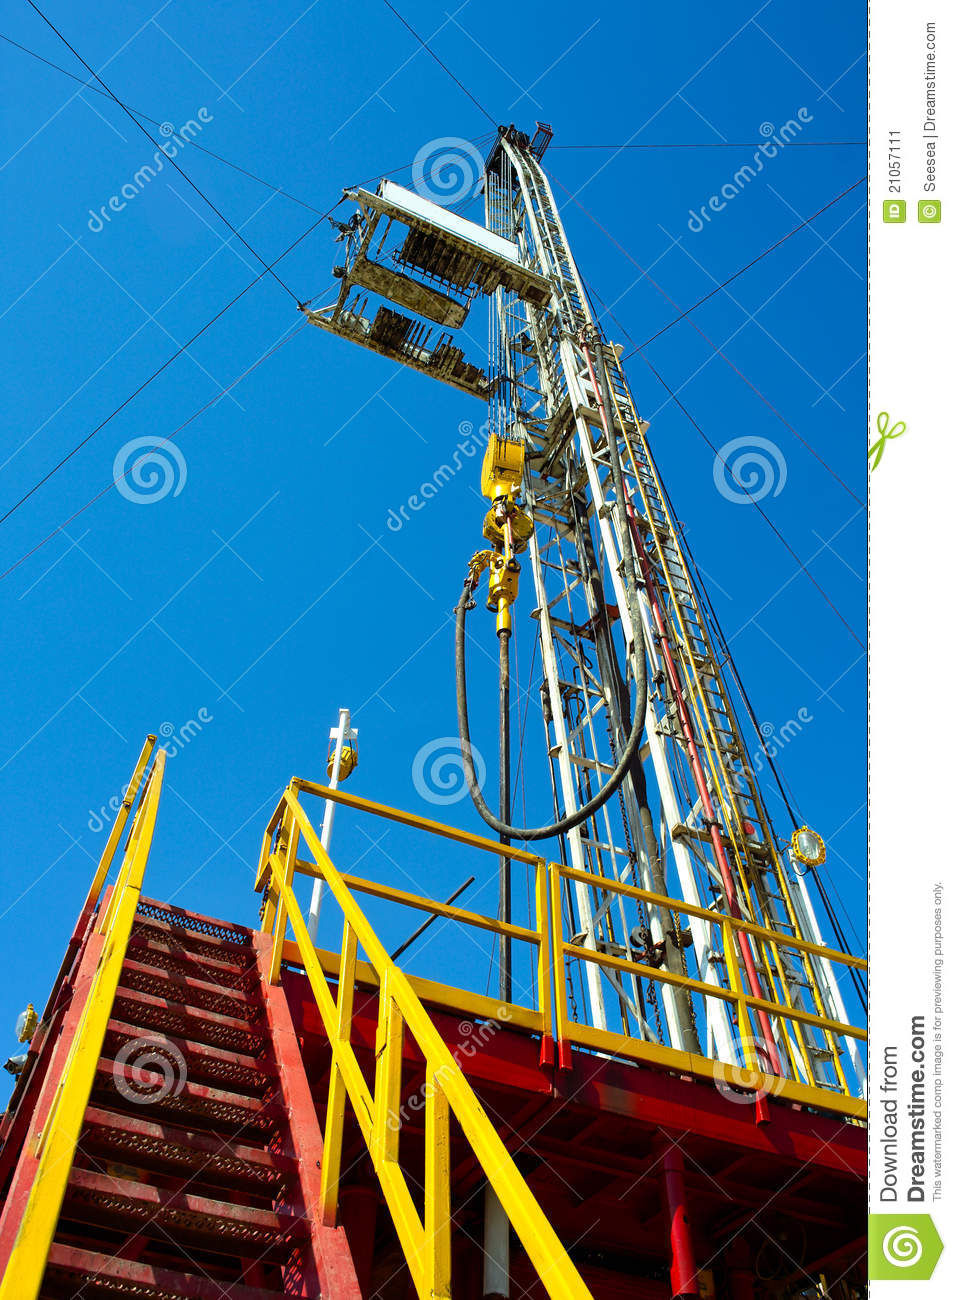 Land Drilling Rig  Stock Image   Image  21057111